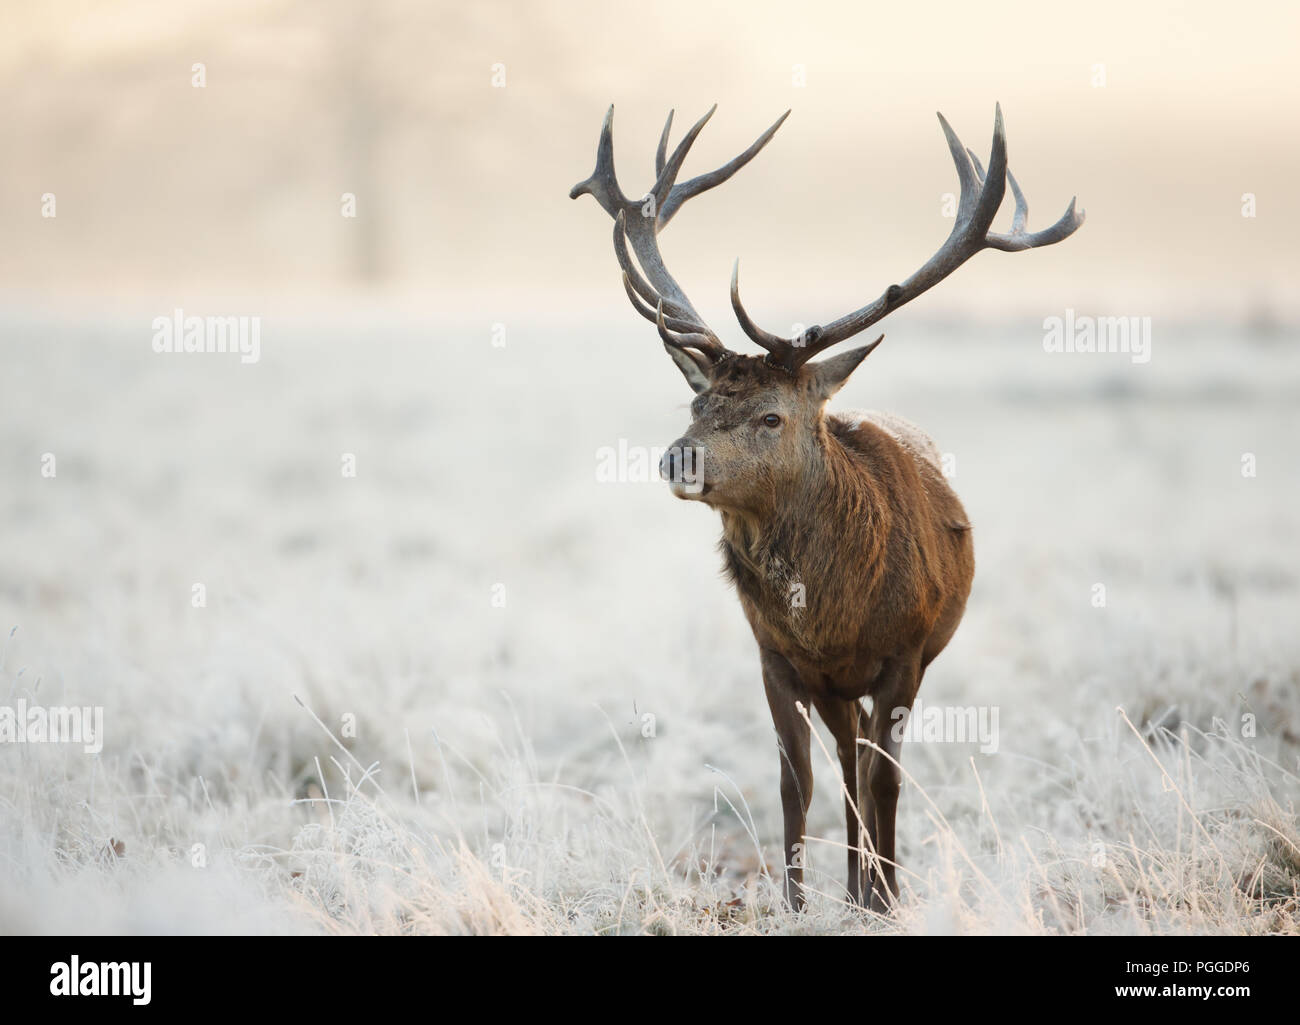 Close-up of a red deer stag standing on a frosted grass in winter, UK. - Stock Image